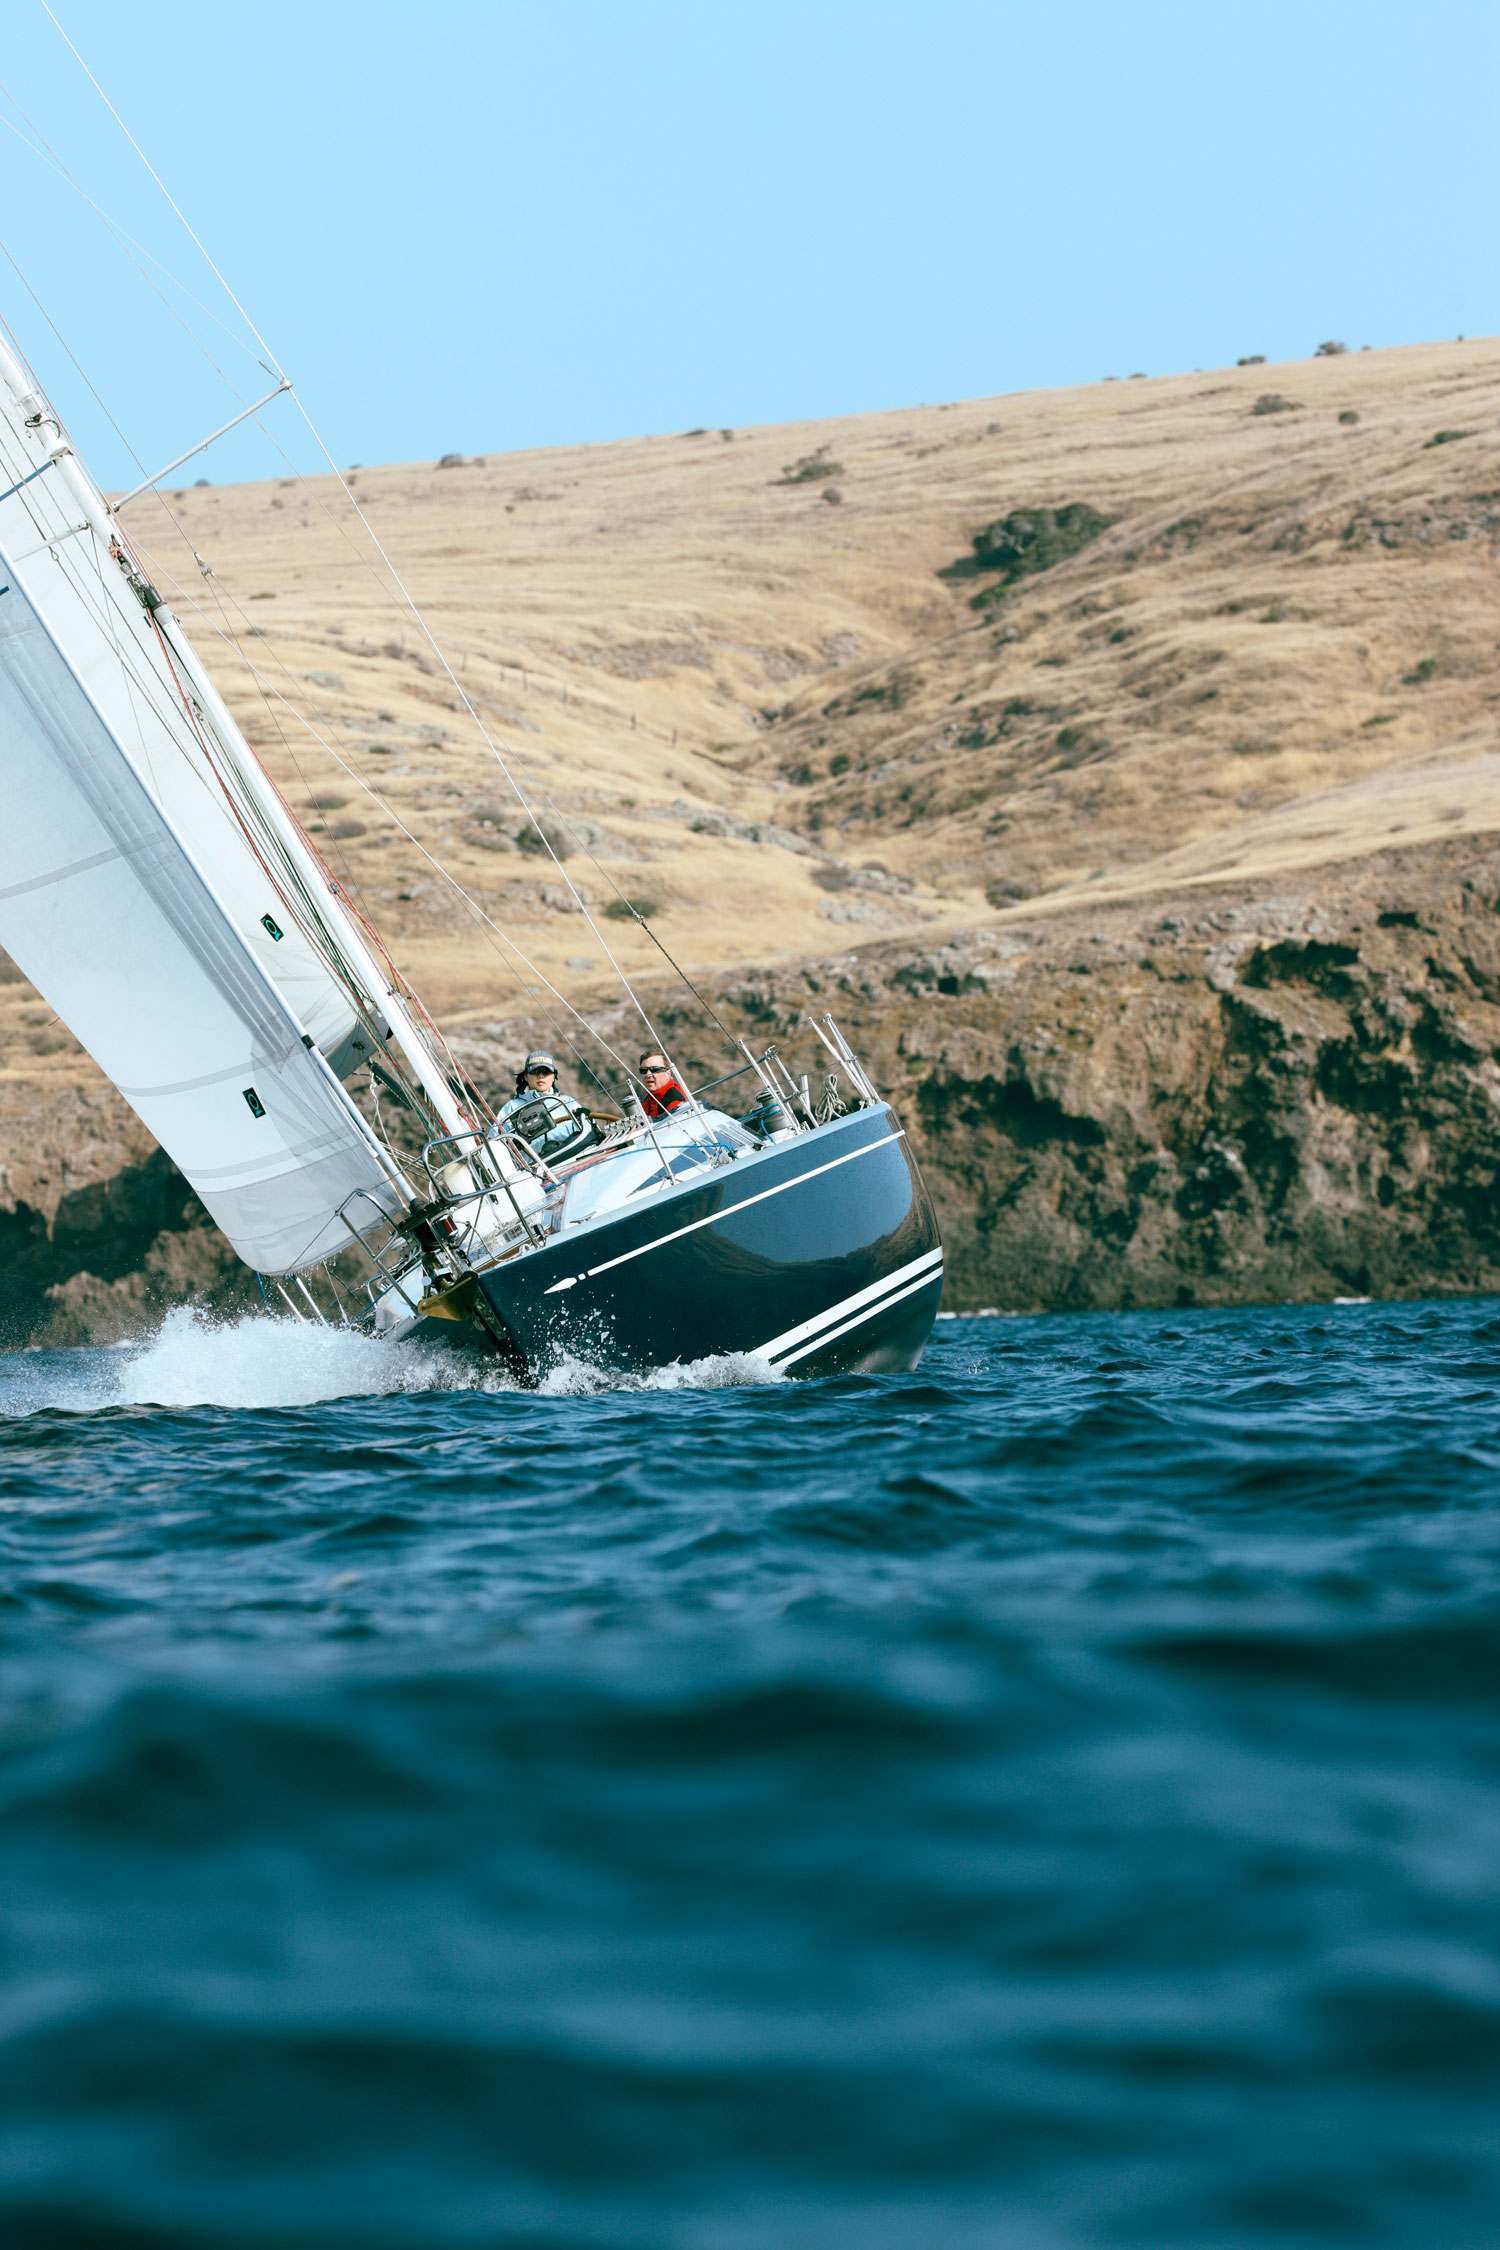 Channel Islands Sailing Weather: Get Started With Sailing